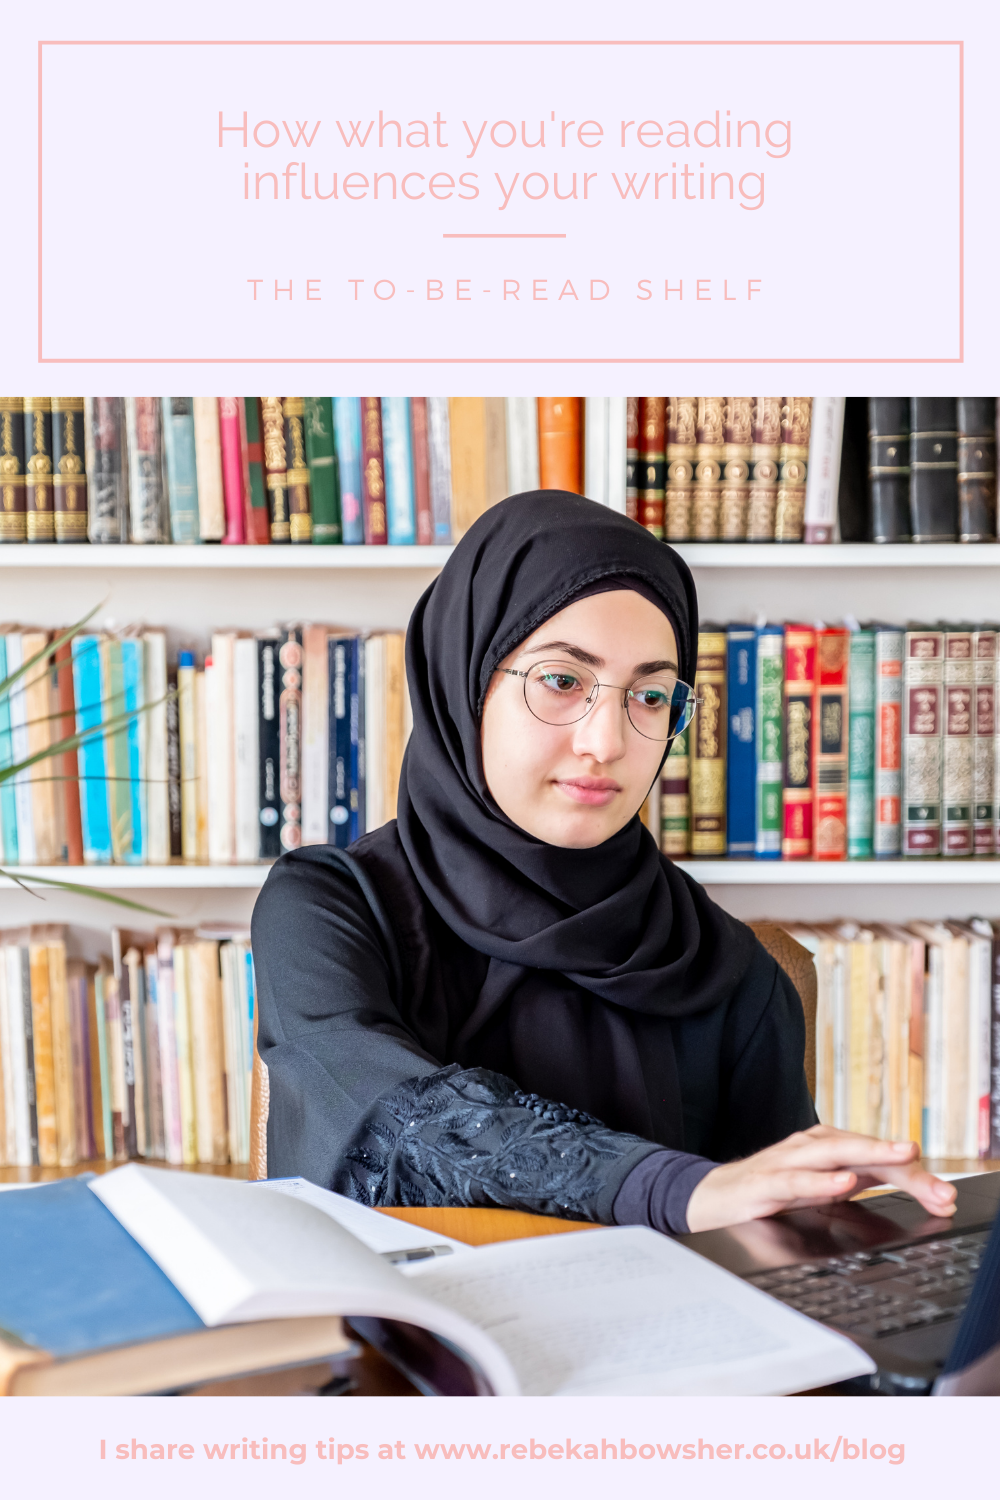 How what youre reading influences your writing the to-be-read shelf. A woman in glasses and a hijab sits in front of a bookshelf writing on a laptop